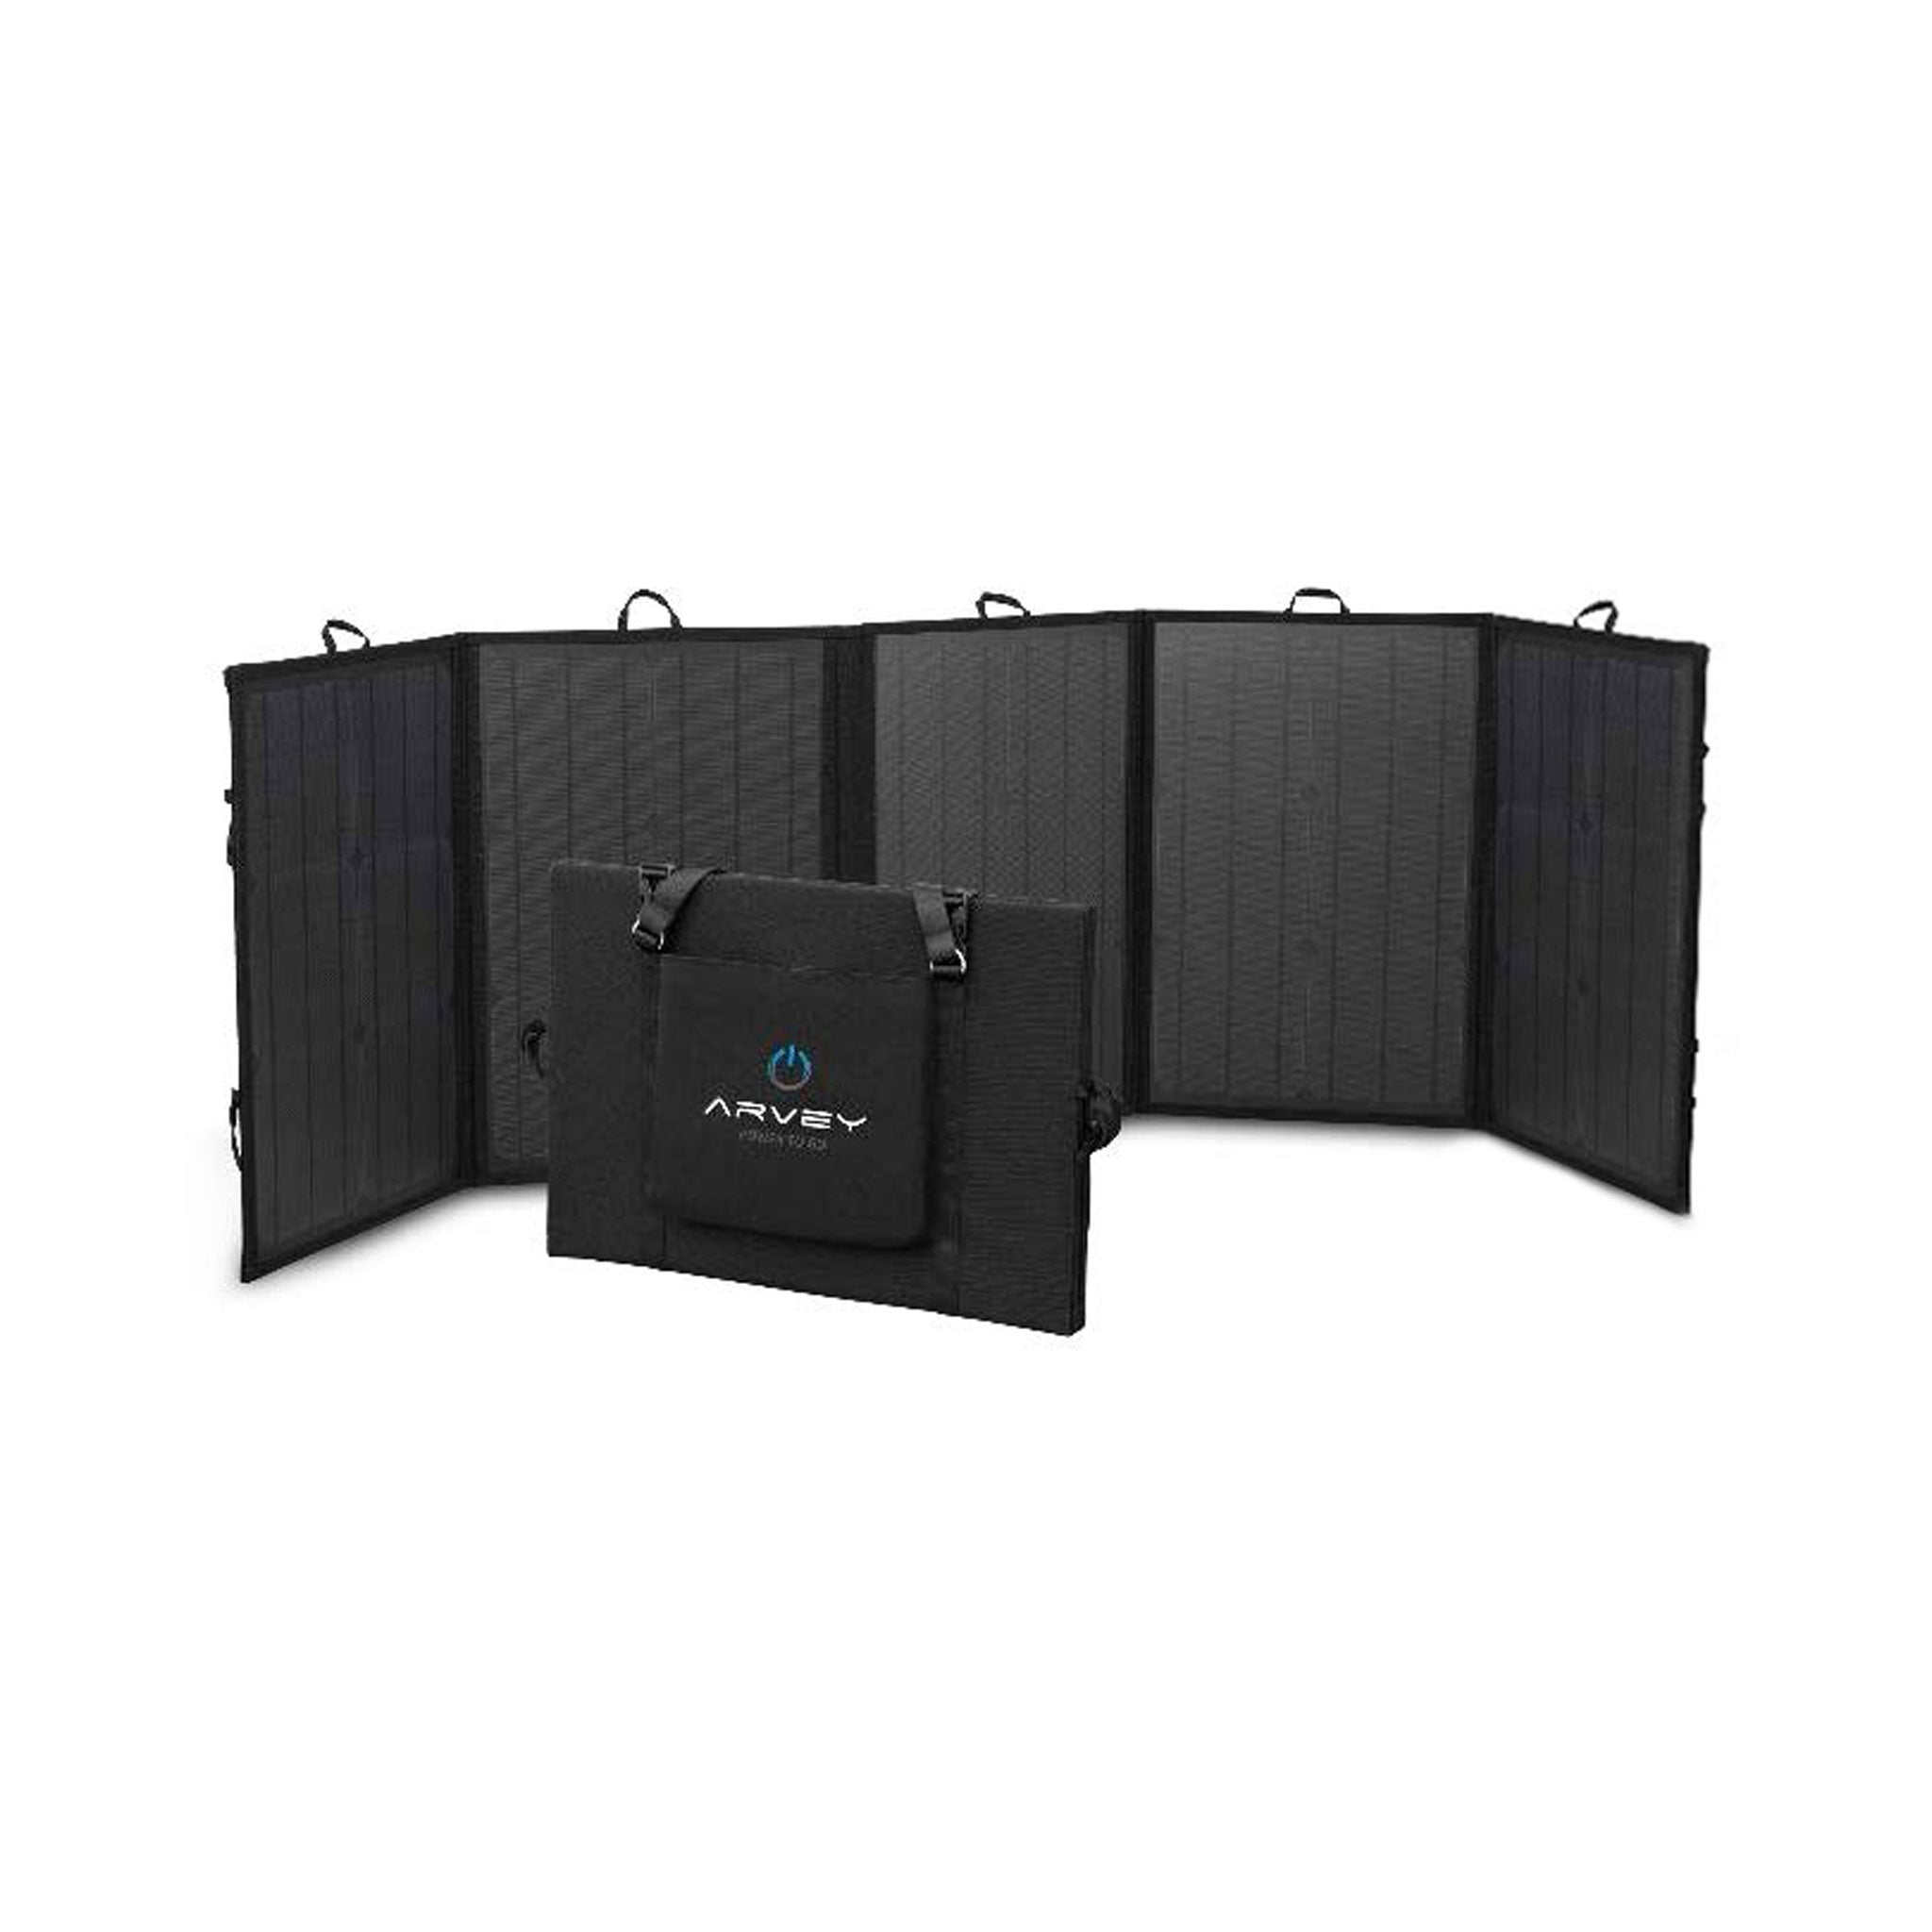 Faltbares Photovoltaik Panel - ARVEY mobile solargenerator and portable power solutions